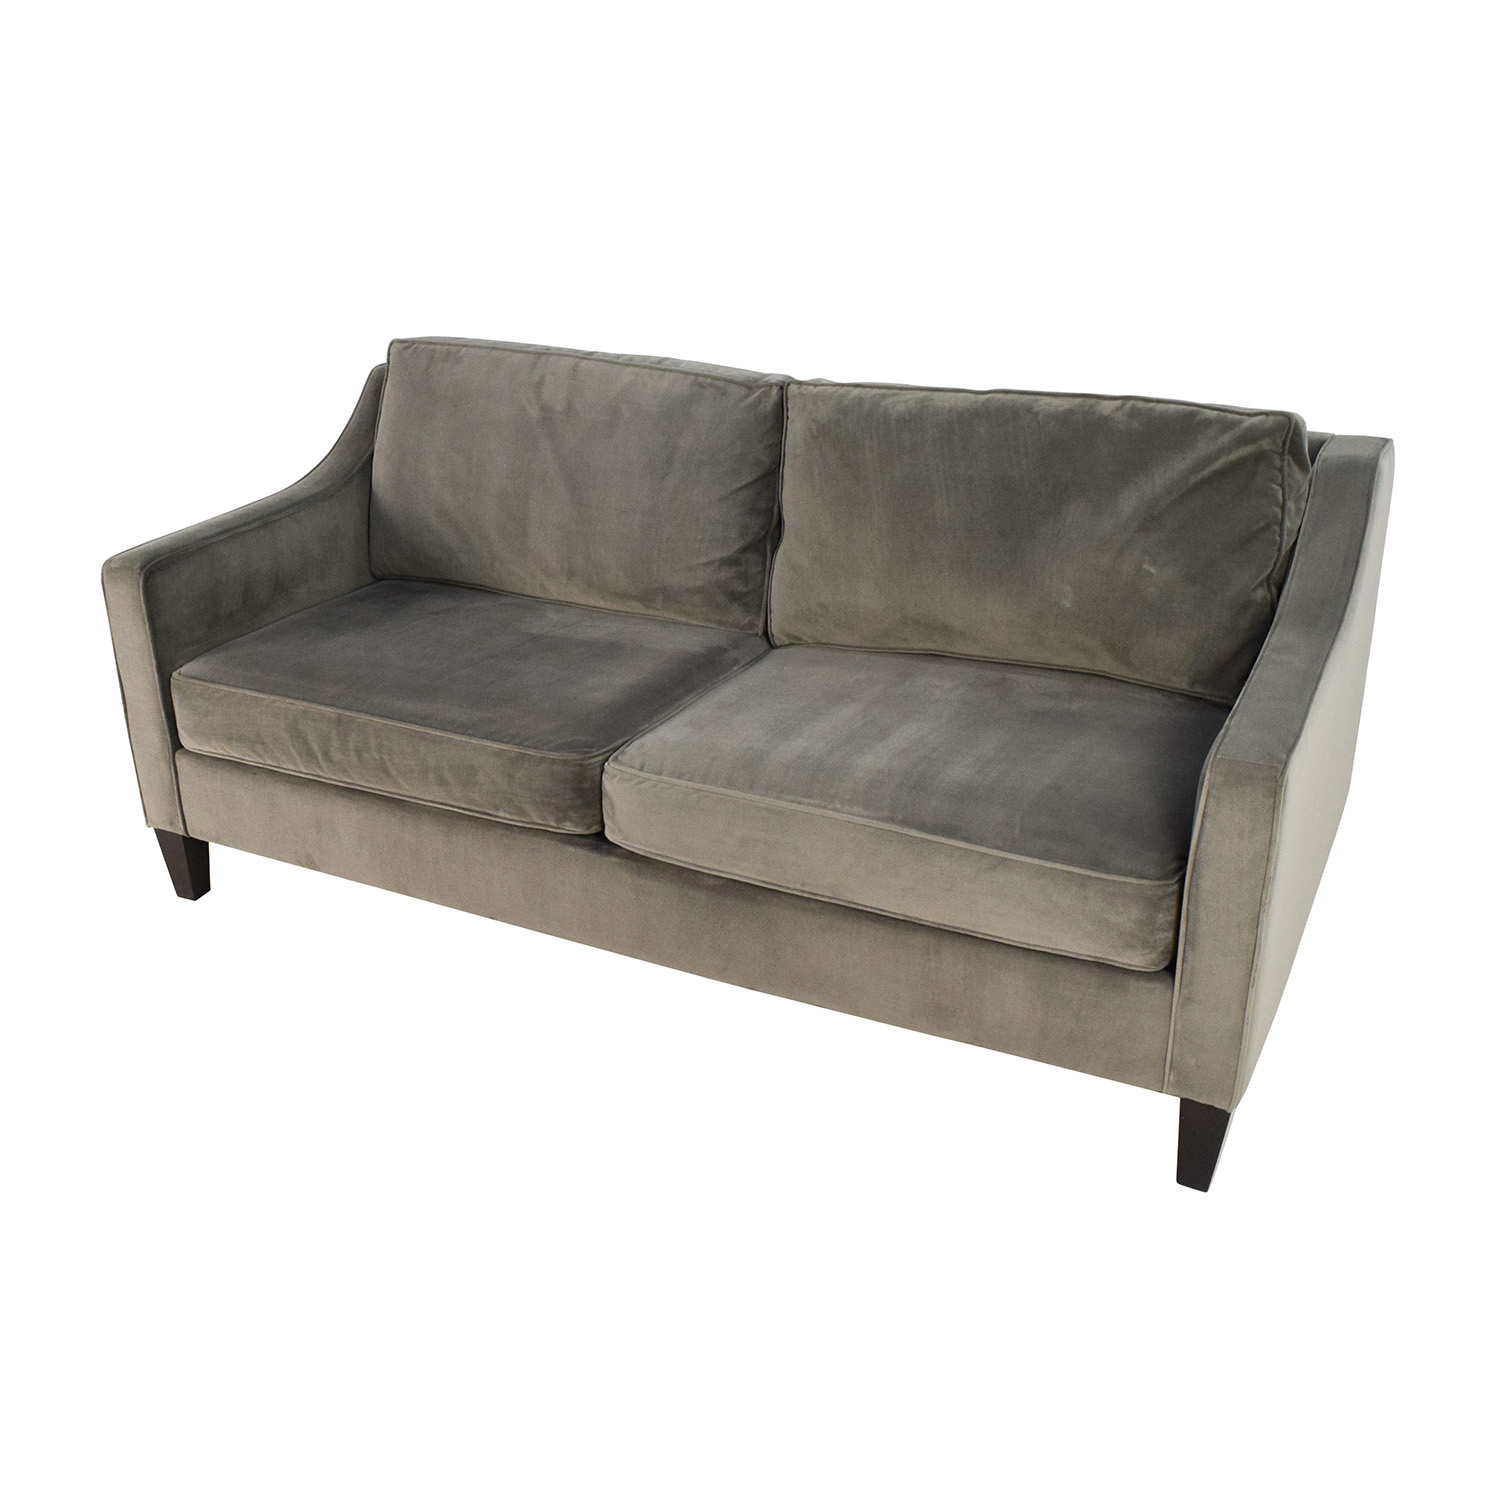 56 off west elm west elm paidge sofa sofas for Best west elm sofa